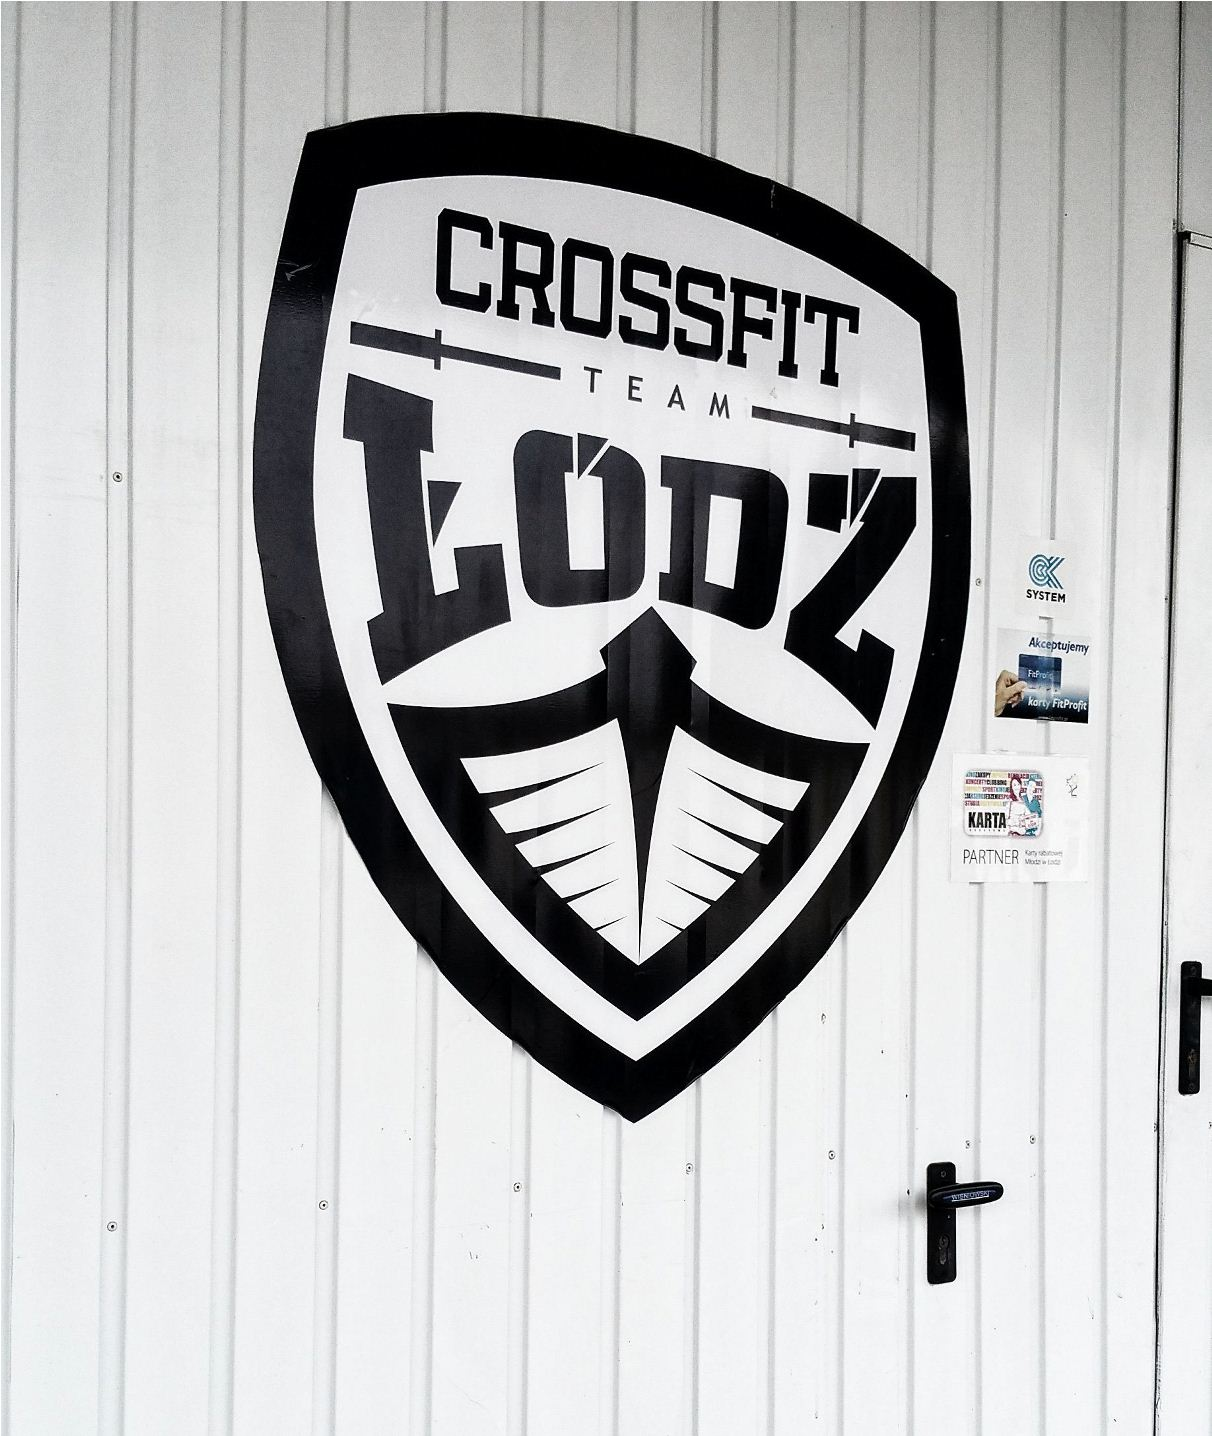 boat-city-crossfit-1